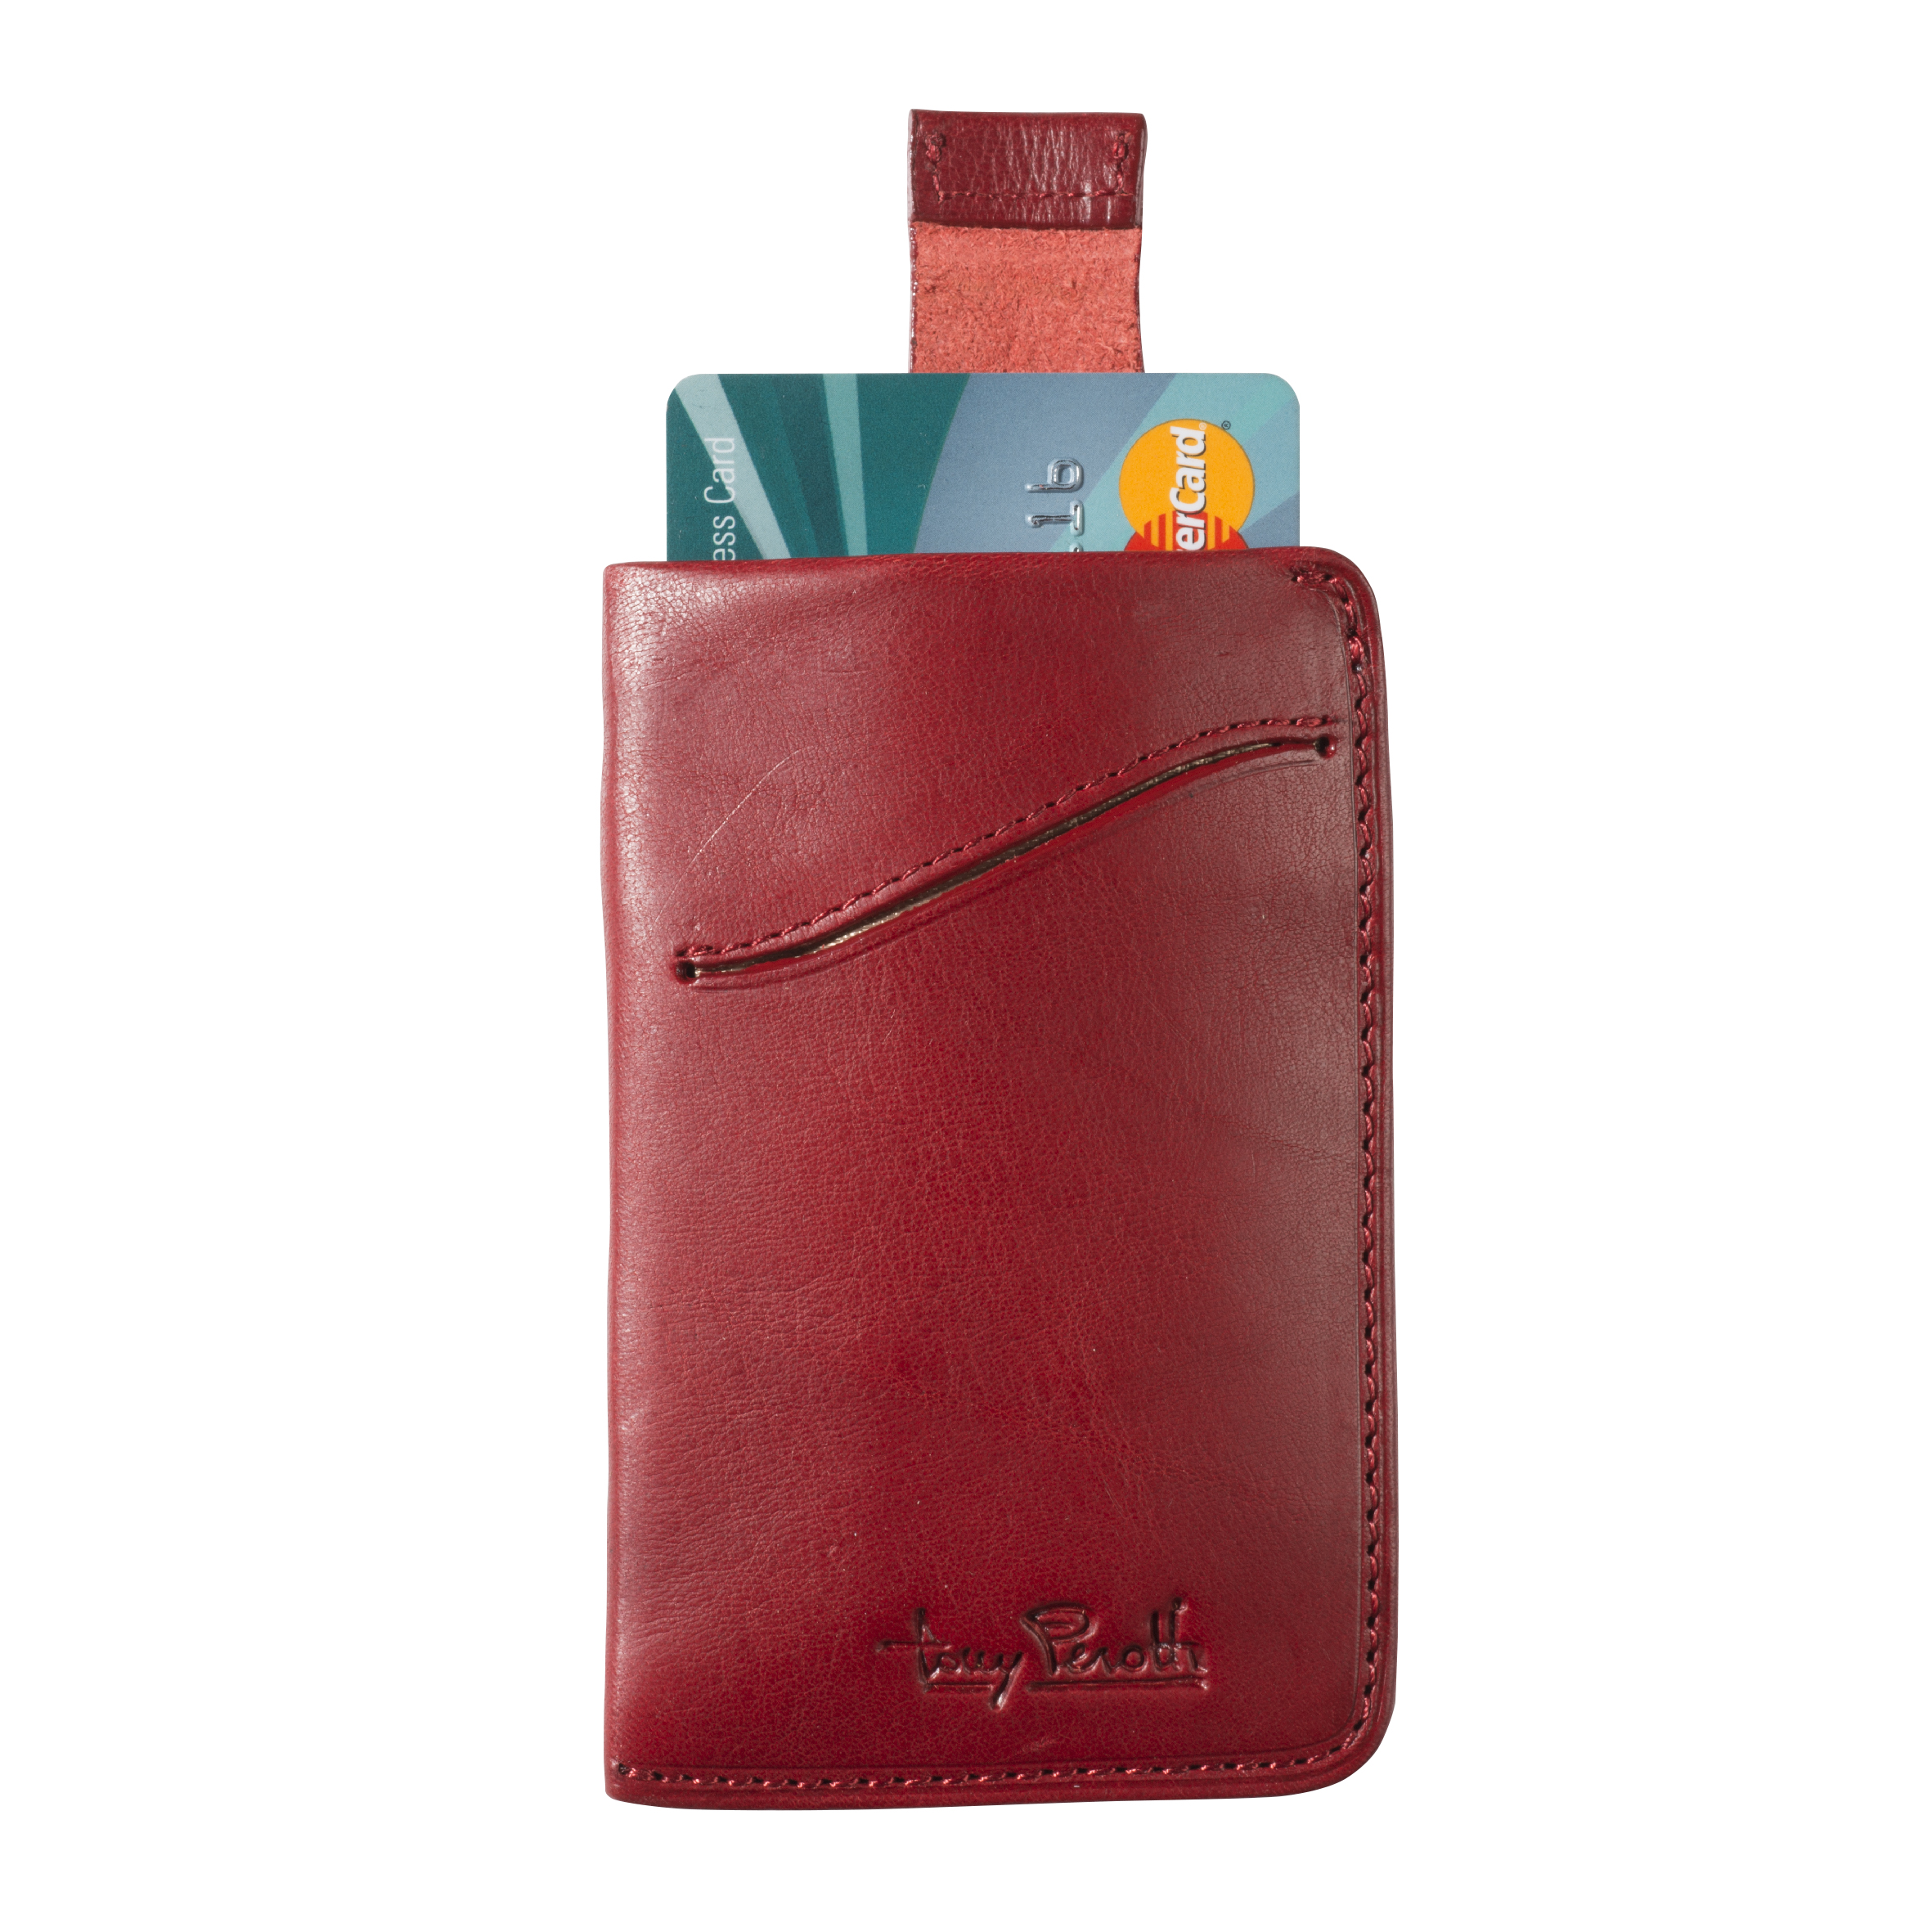 Tony Perotti Creditcard Wallet with Pull up System Red